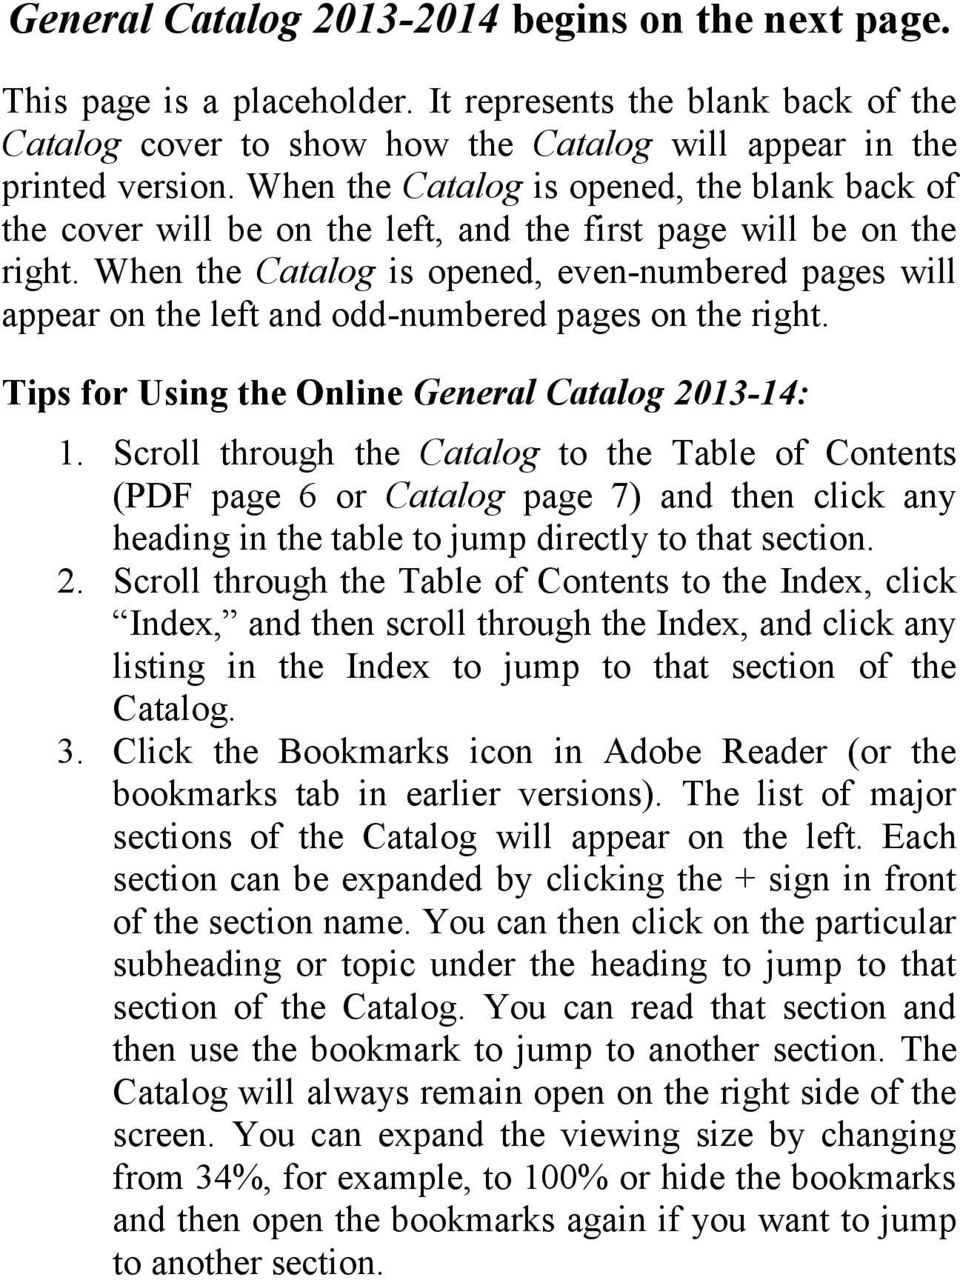 When the Catalog is opened, even-numbered pages will appear on the left and odd-numbered pages on the right. Tips for Using the Online General Catalog 2013-14: 1.